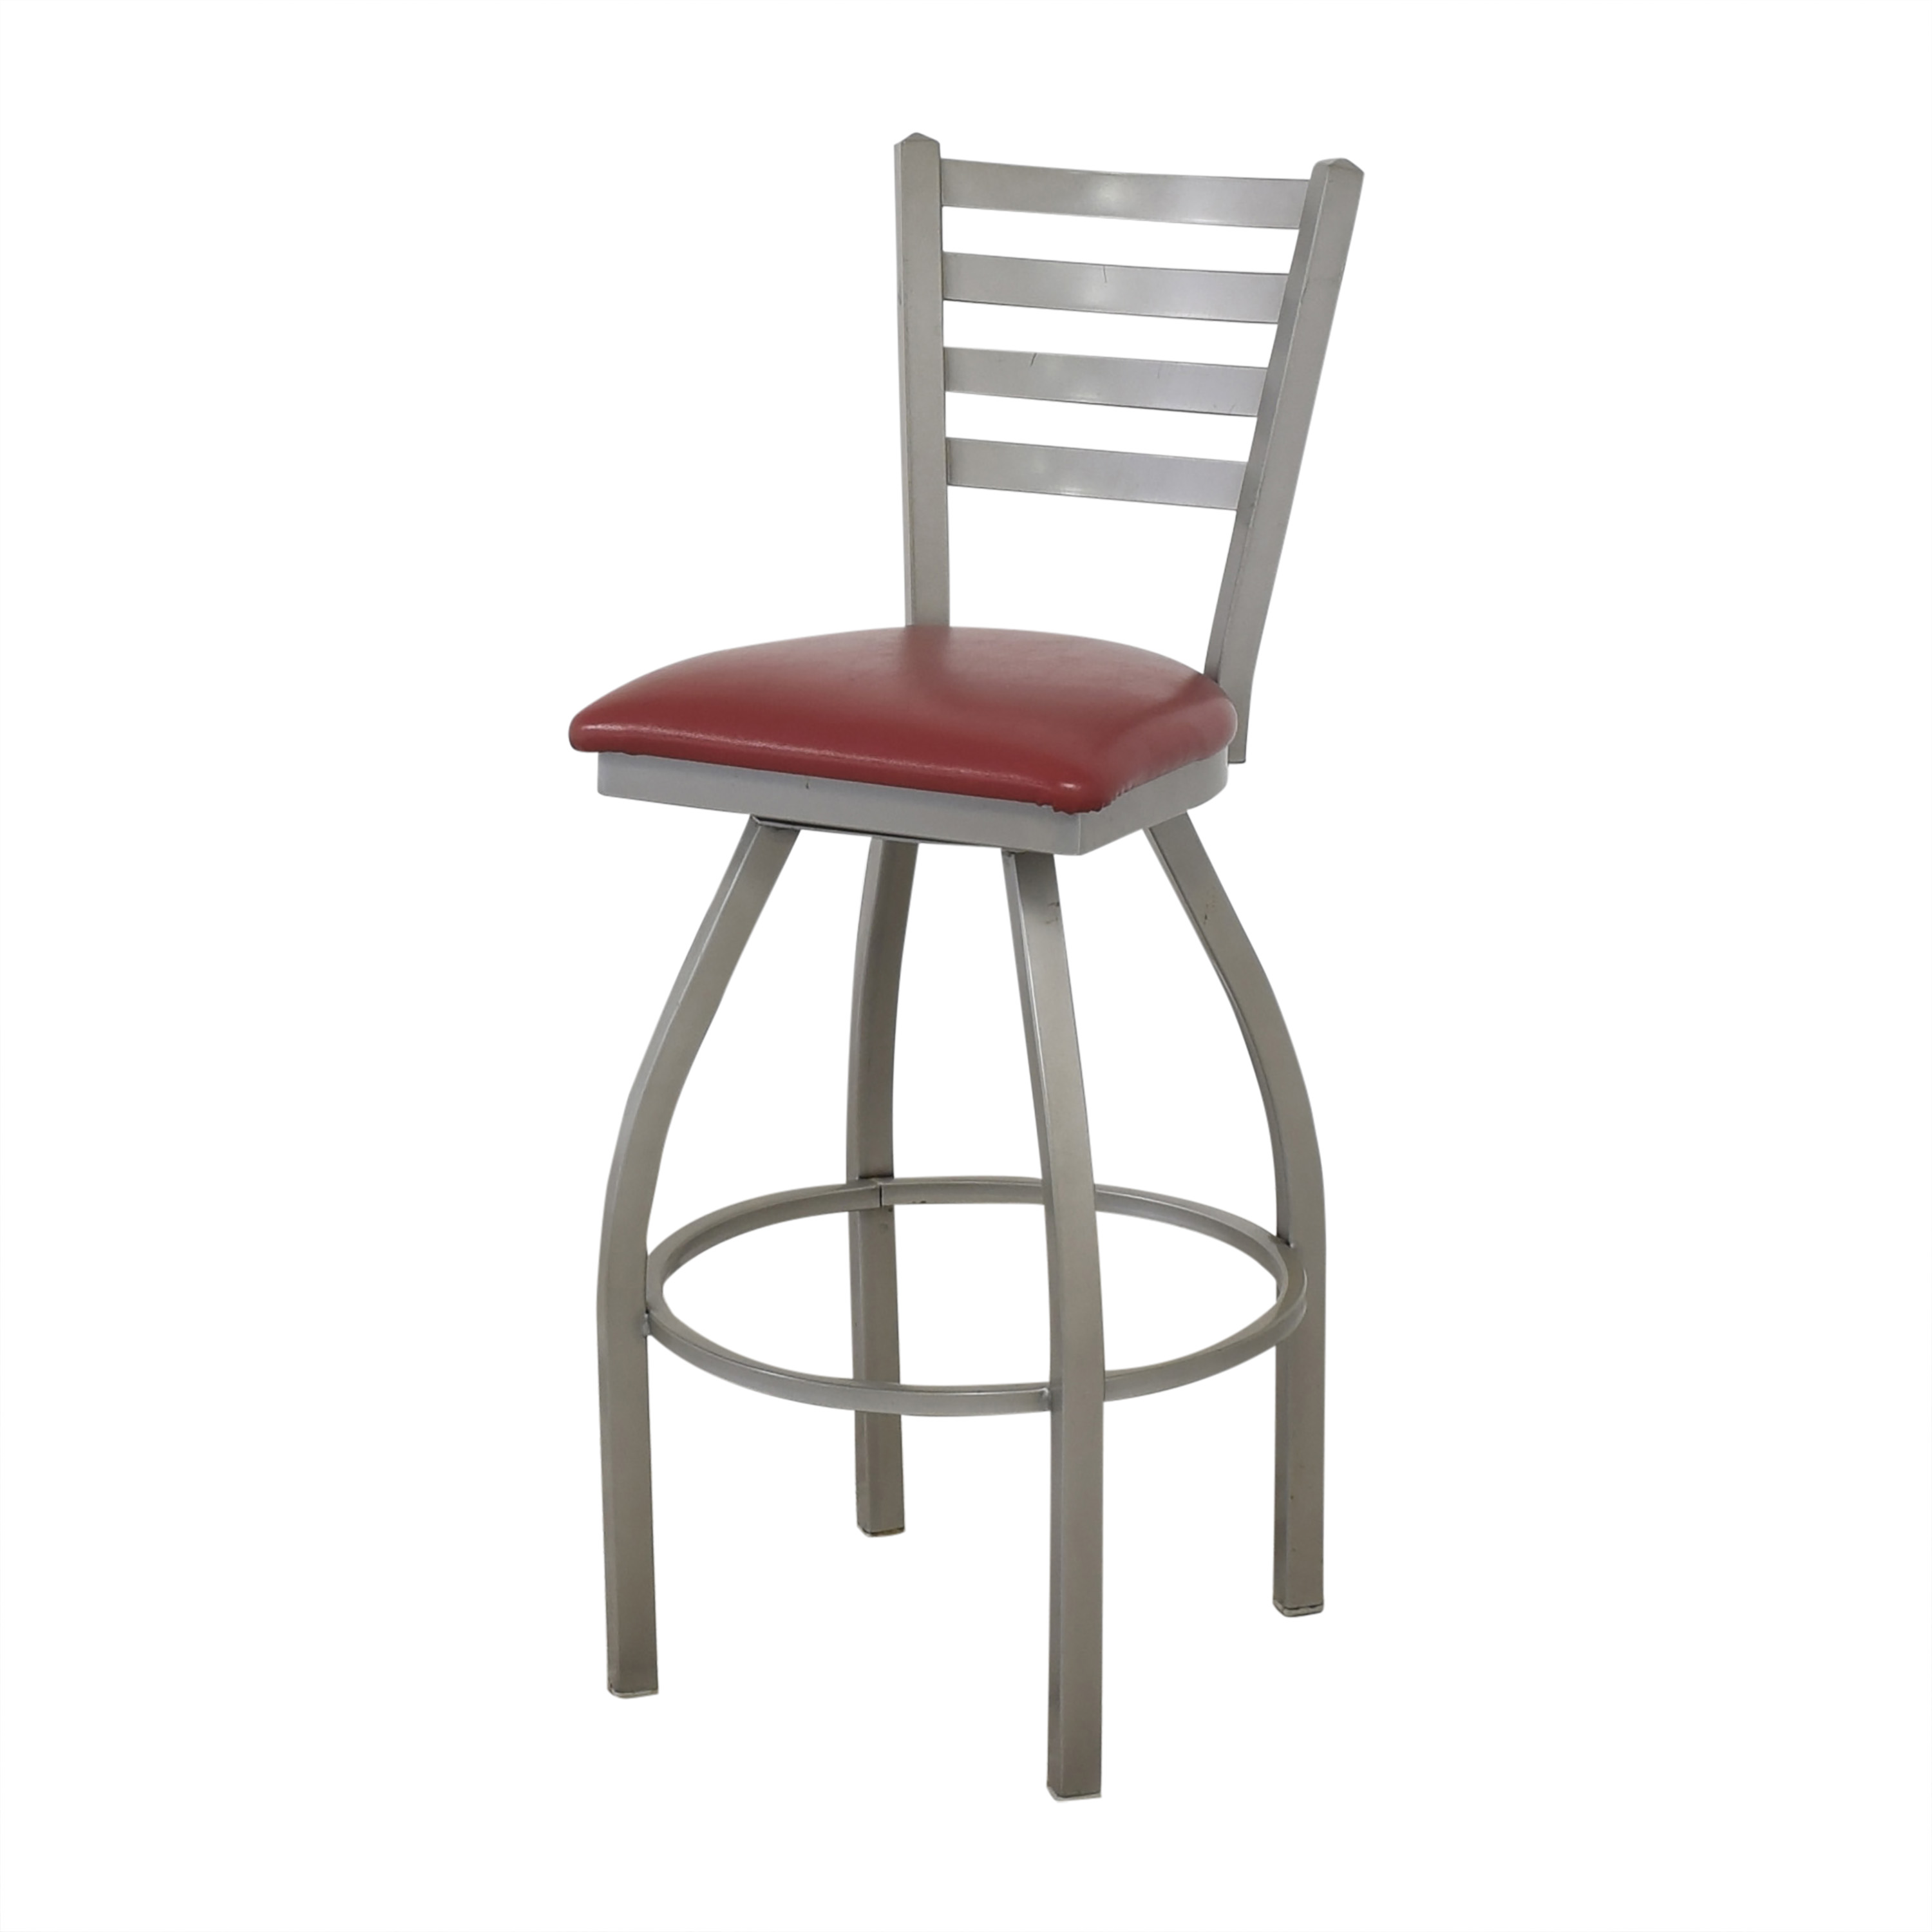 Grand Rapids Bookcase and Chair Co. Anne Swivel Bar Stools Grand Rapids Bookcase and Chair Co.